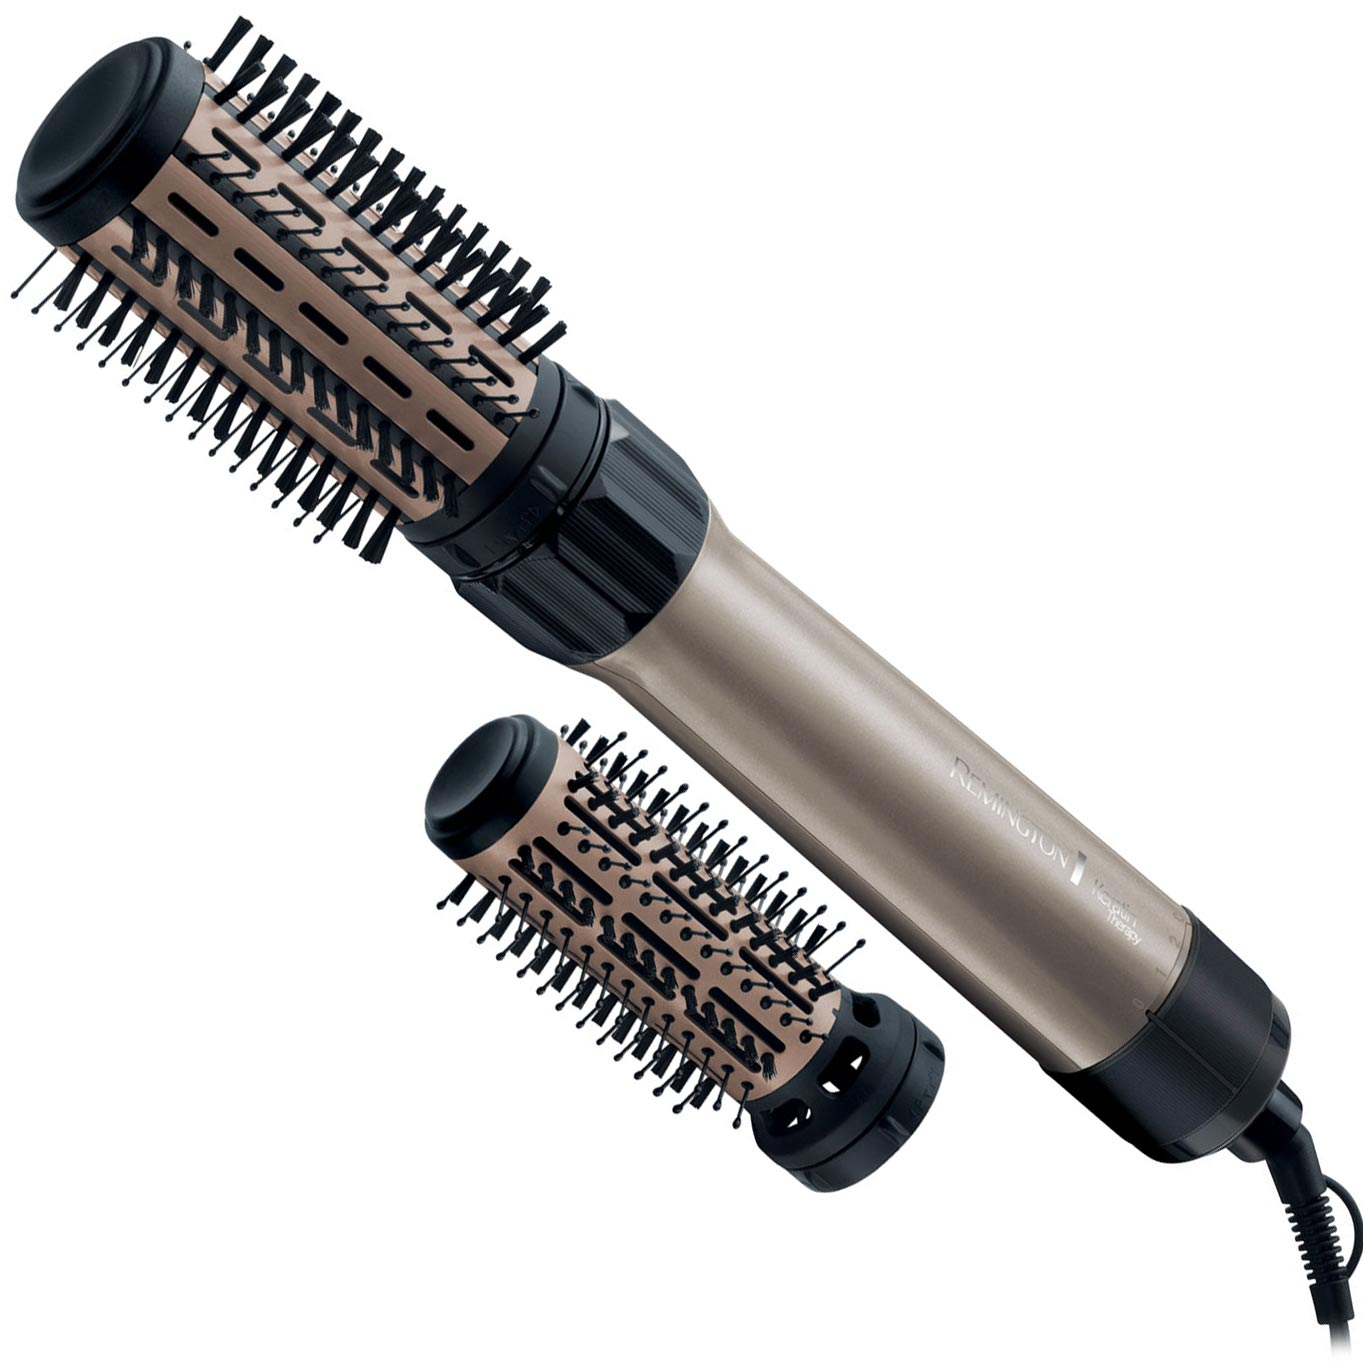 Reminton AS8110 irstyler Keratin Volume